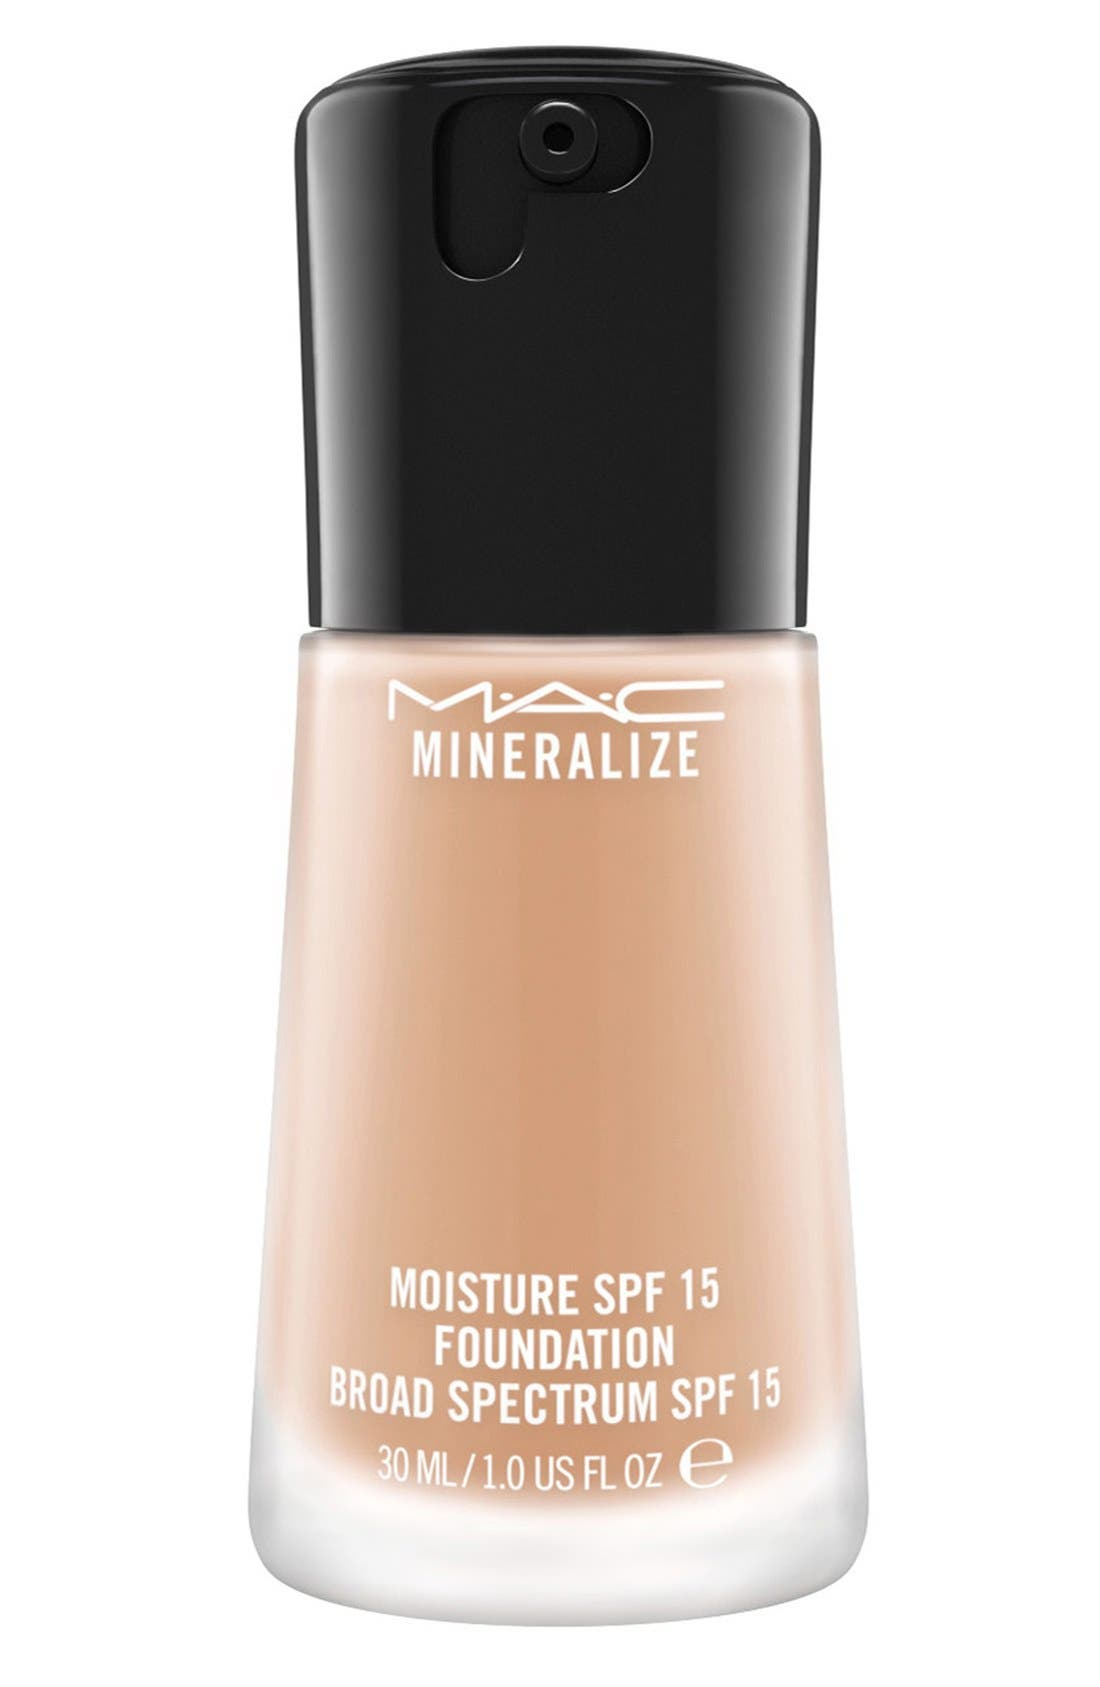 MAC Mineralize Moisture Foundation Broad Spectrum SPF 15